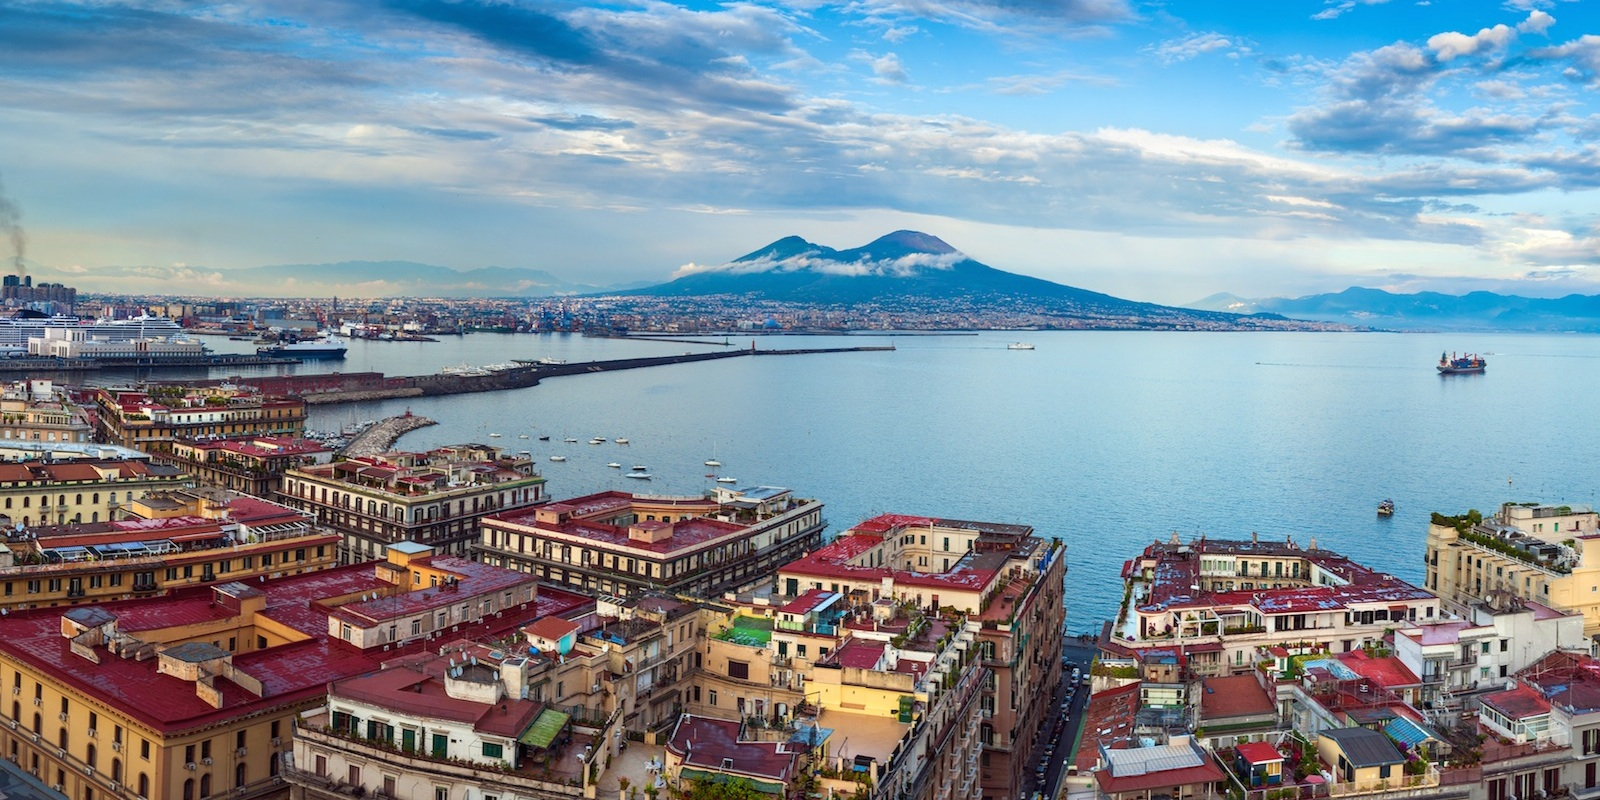 Napoli Citta Related Keywords & Suggestions - Napoli Citta Long Tail ...